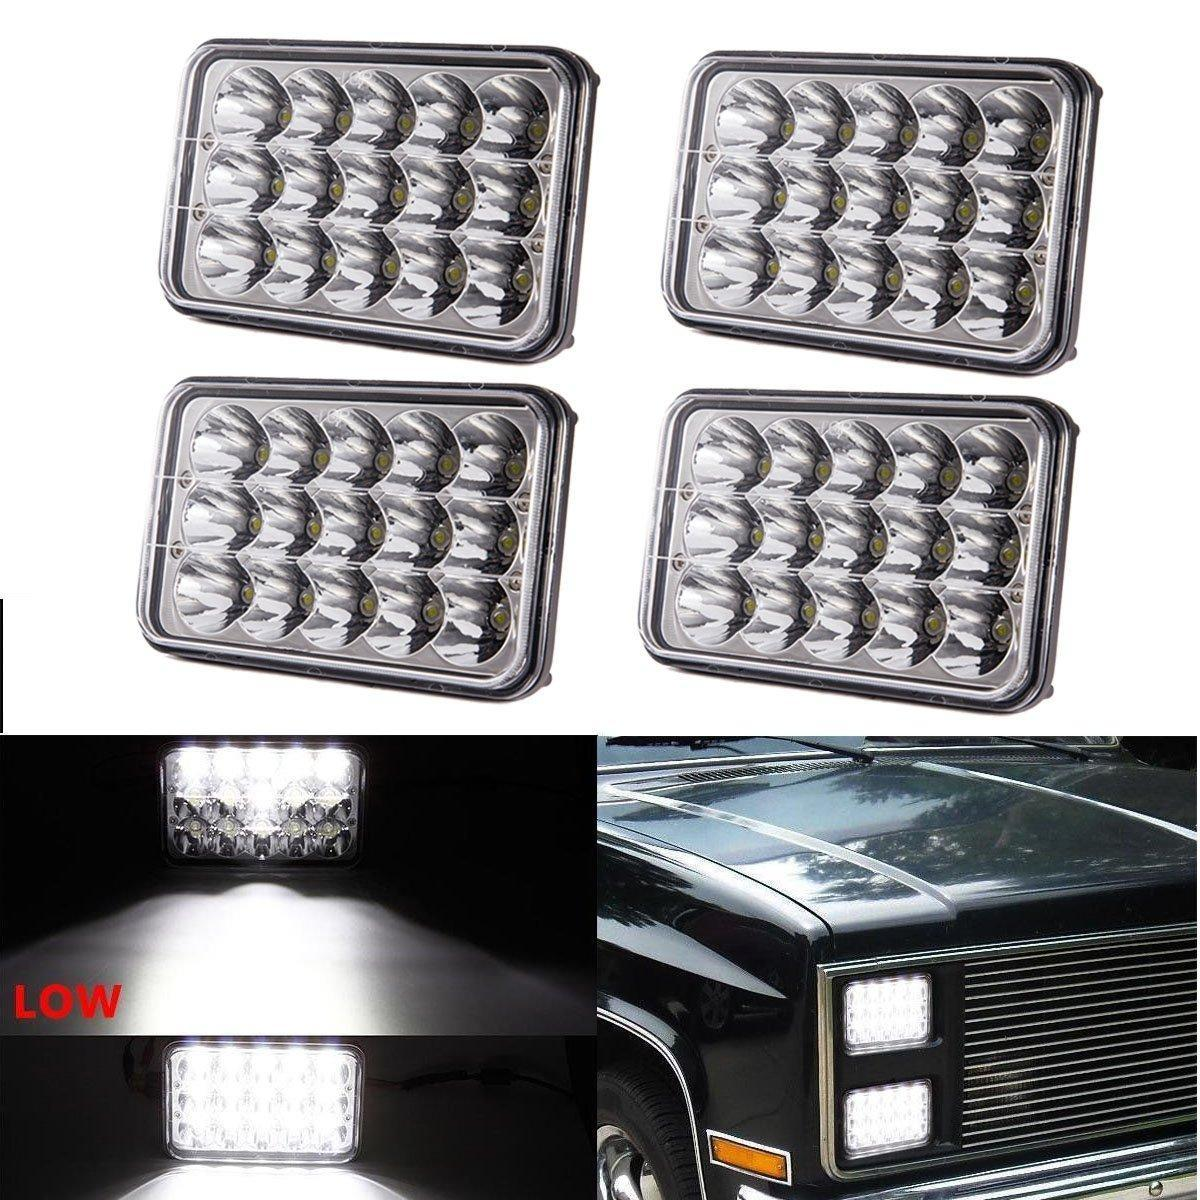 4x6 inch LED Headlights Rectangular Replacement H4651 H4652 H4656 H4666 H6545